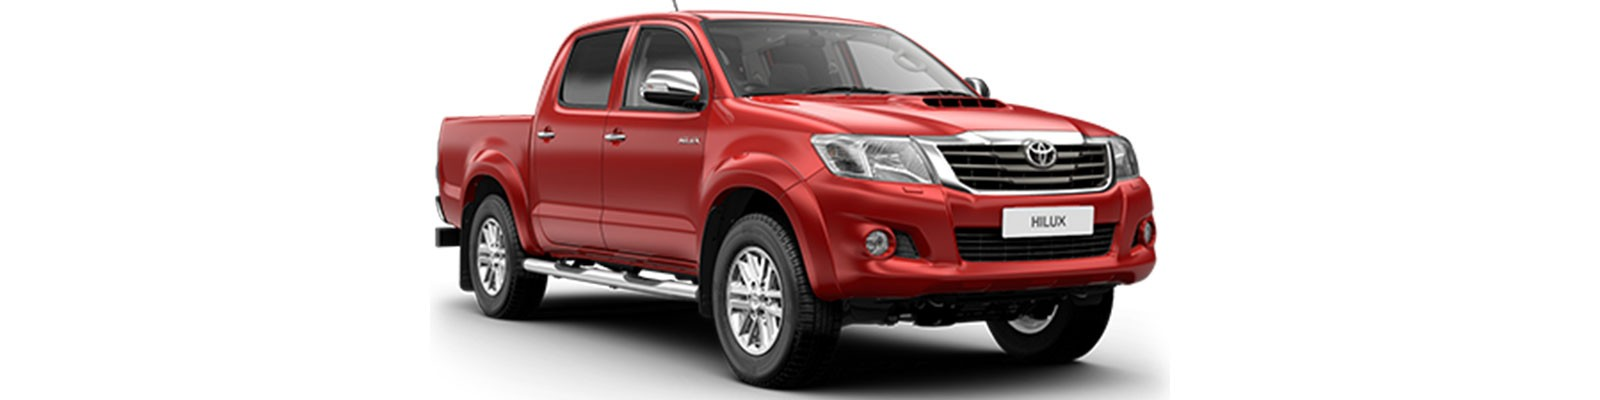 Accessories For Toyota Hilux Vigo Double Cab 2012 To 2016